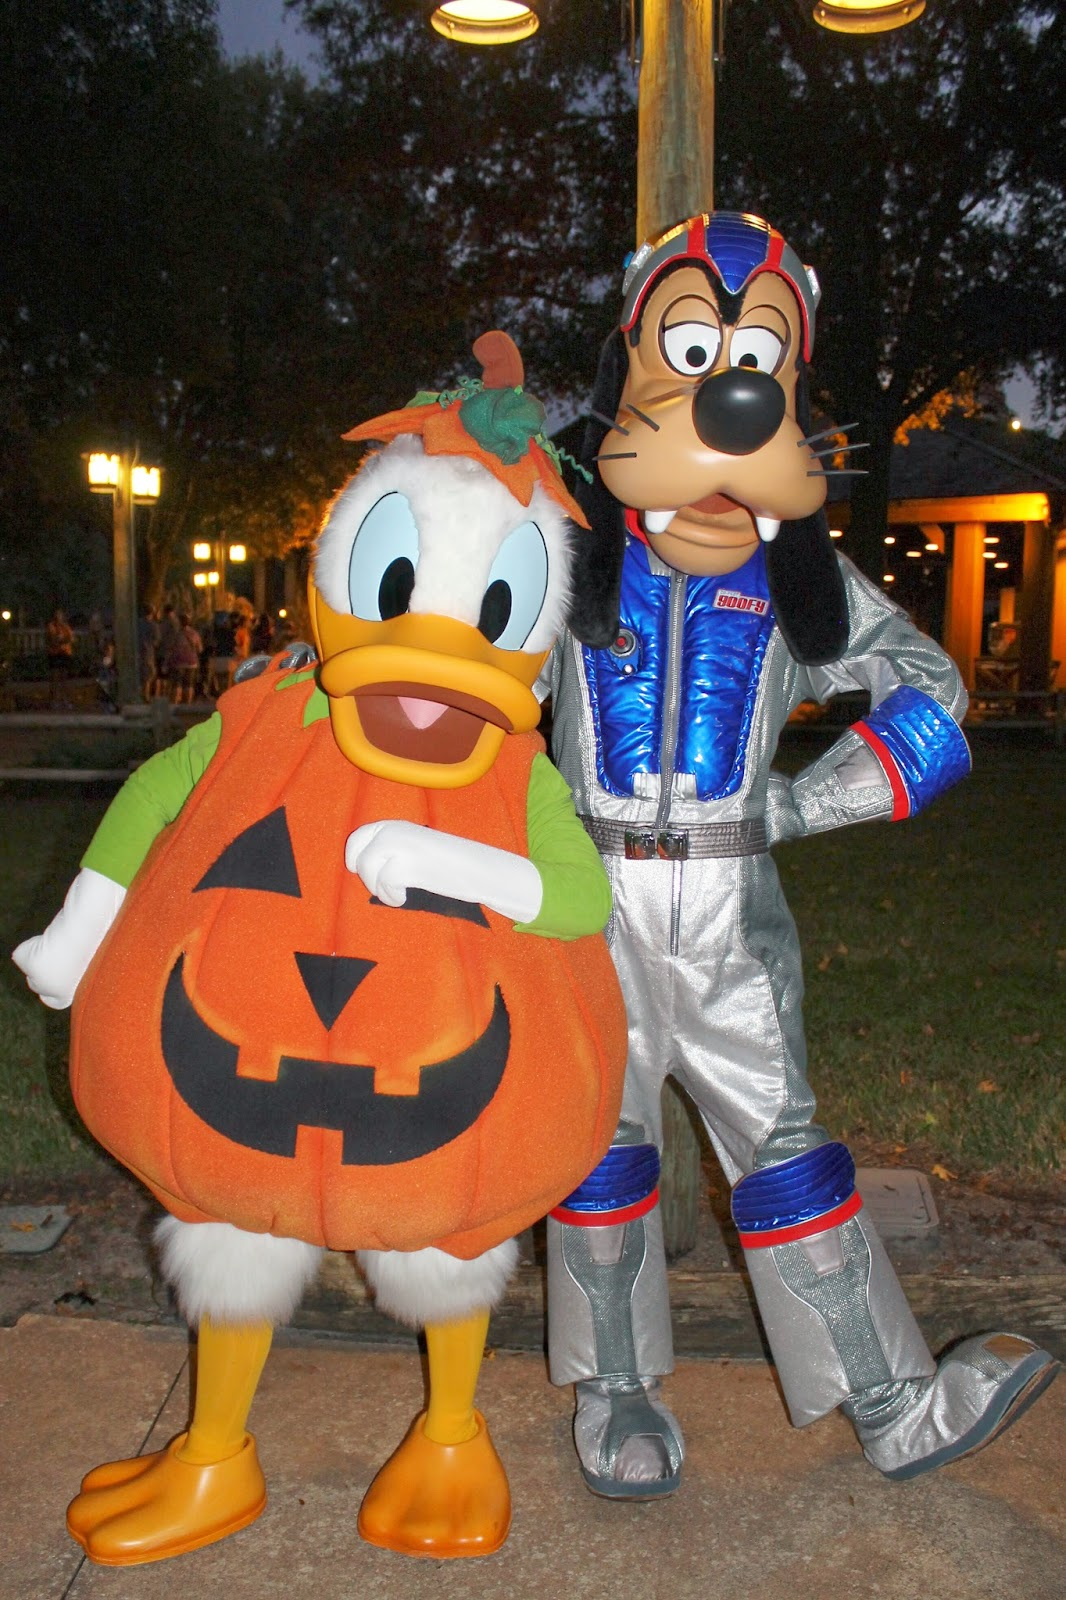 Donald Duck Goofy Disney Character Hunt Fort Wilderness Mickey's Backyard Barbeque